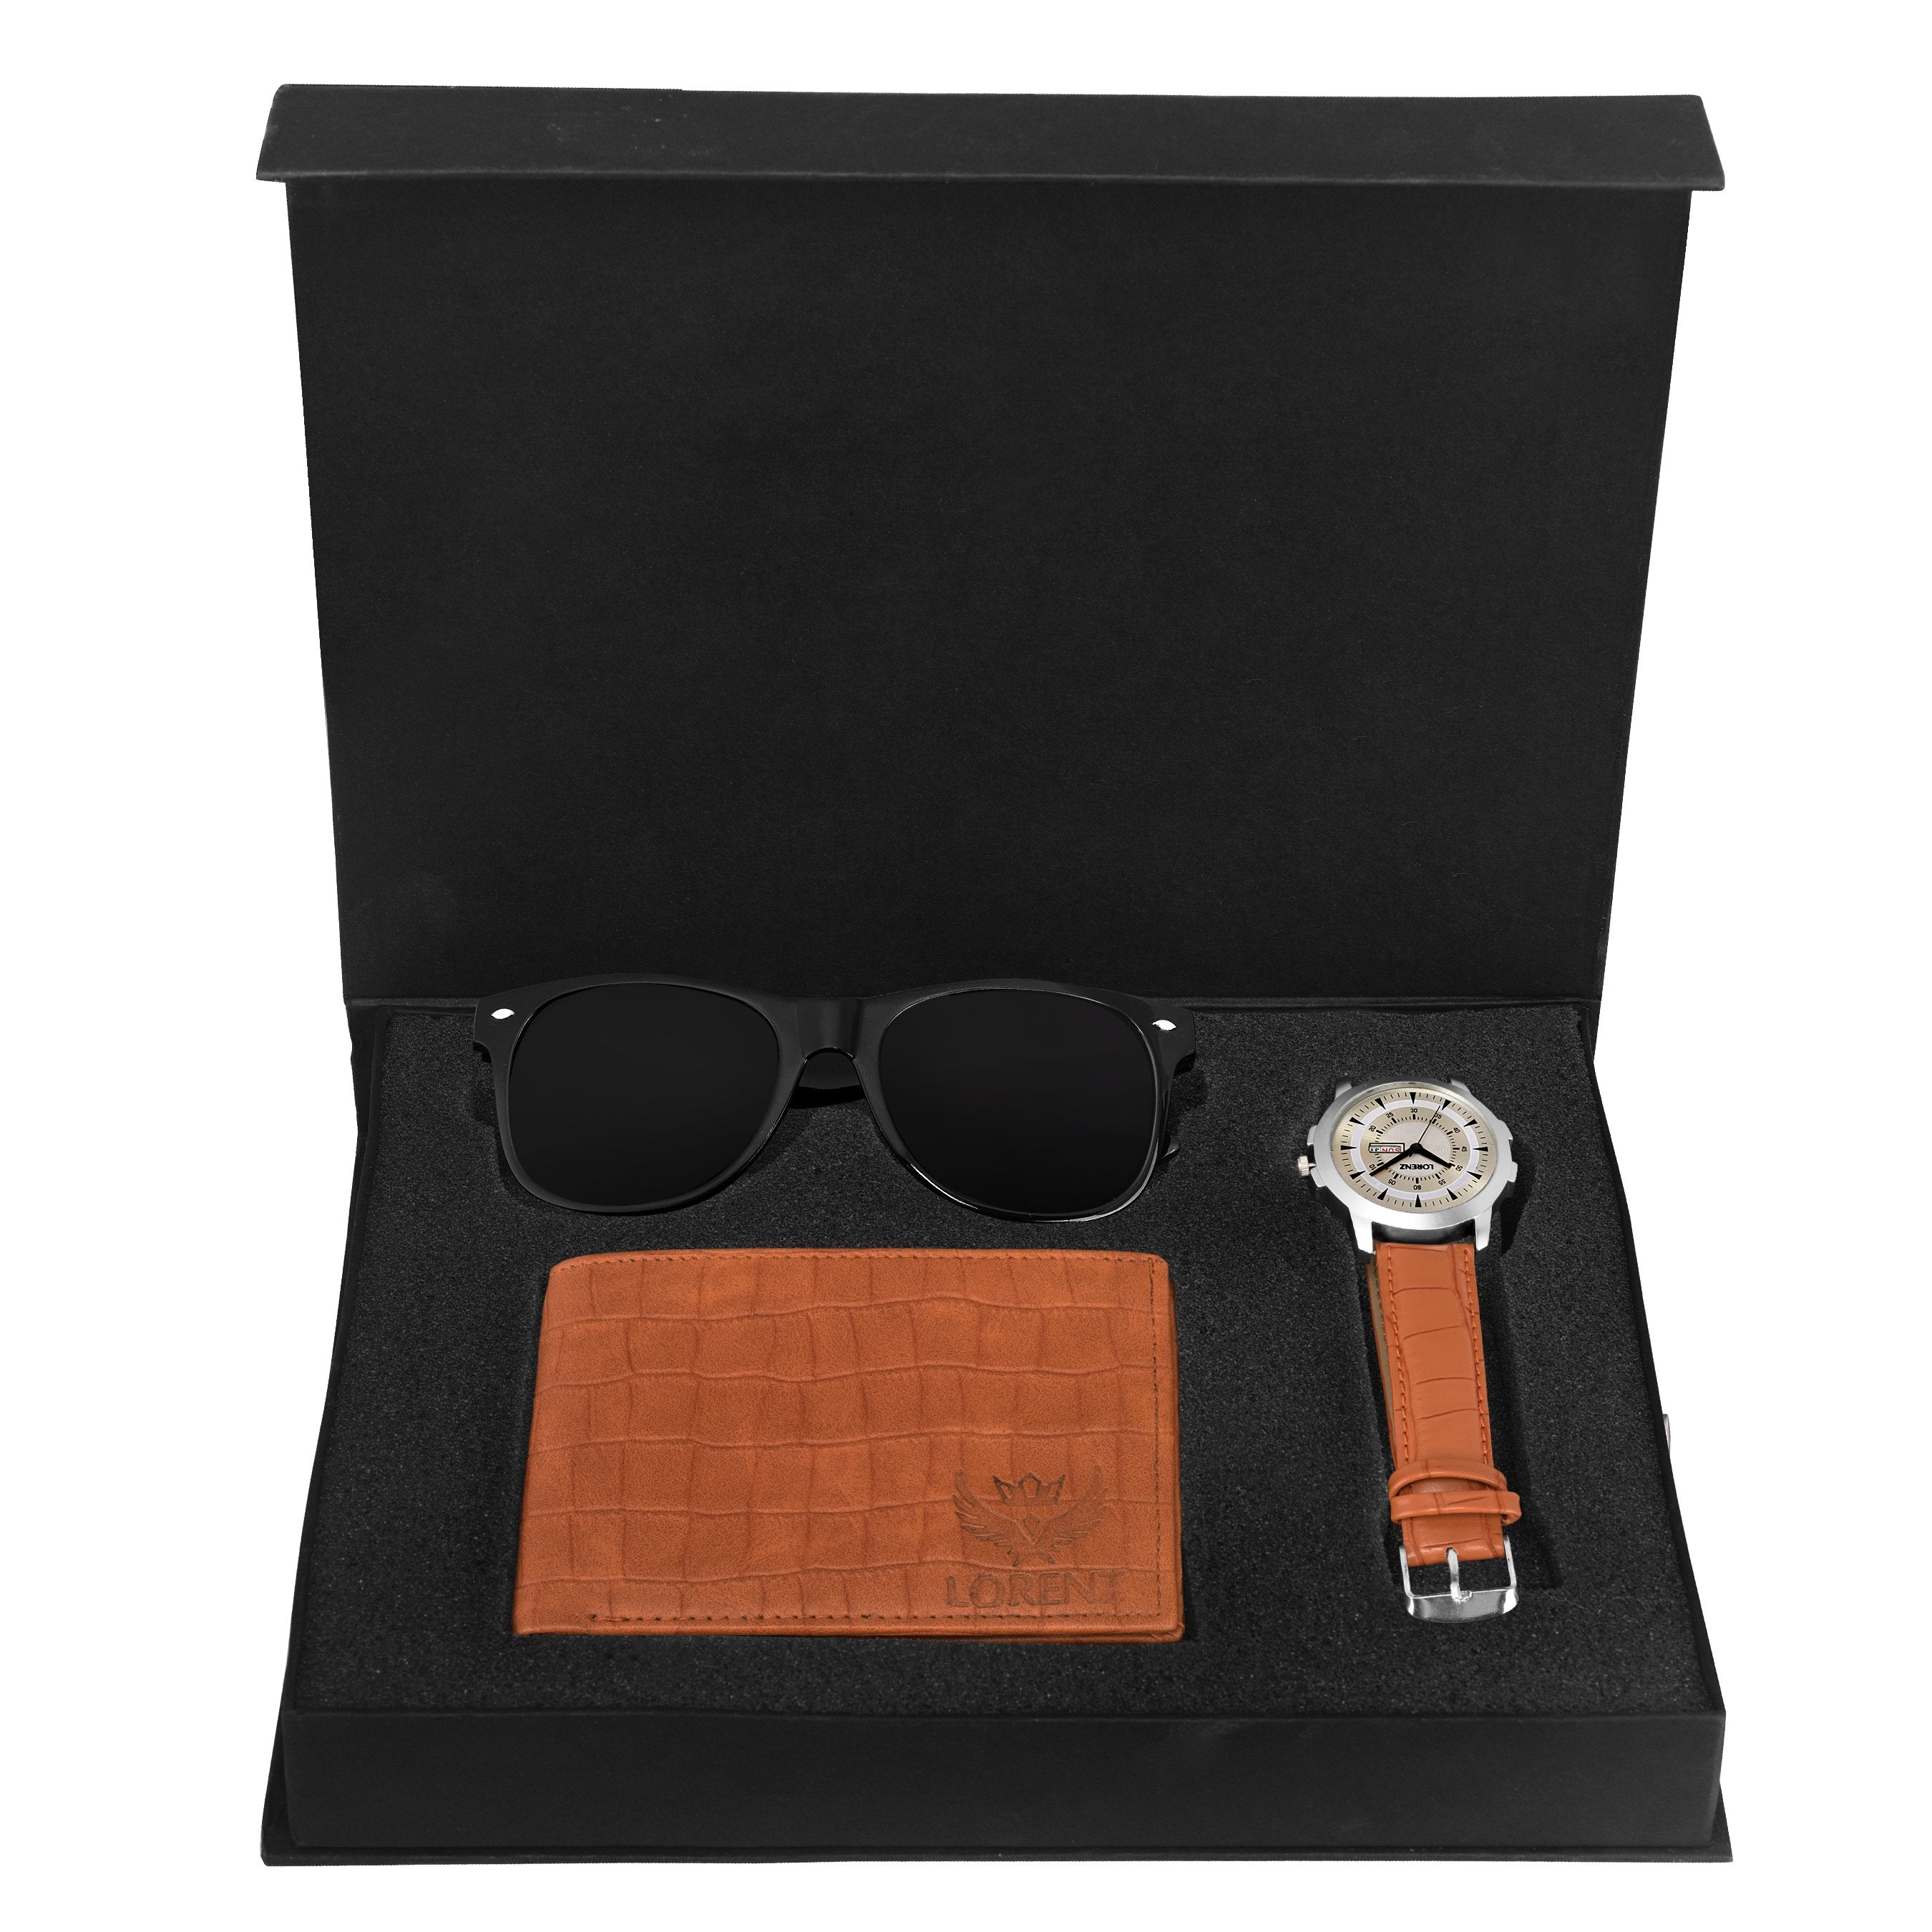 Lorenz CM-2016SN-WL-07 Combo of Men's Silver Dial Analogue Watch, Brown Wallet and Black Sunglasses - Lorenz Fashion